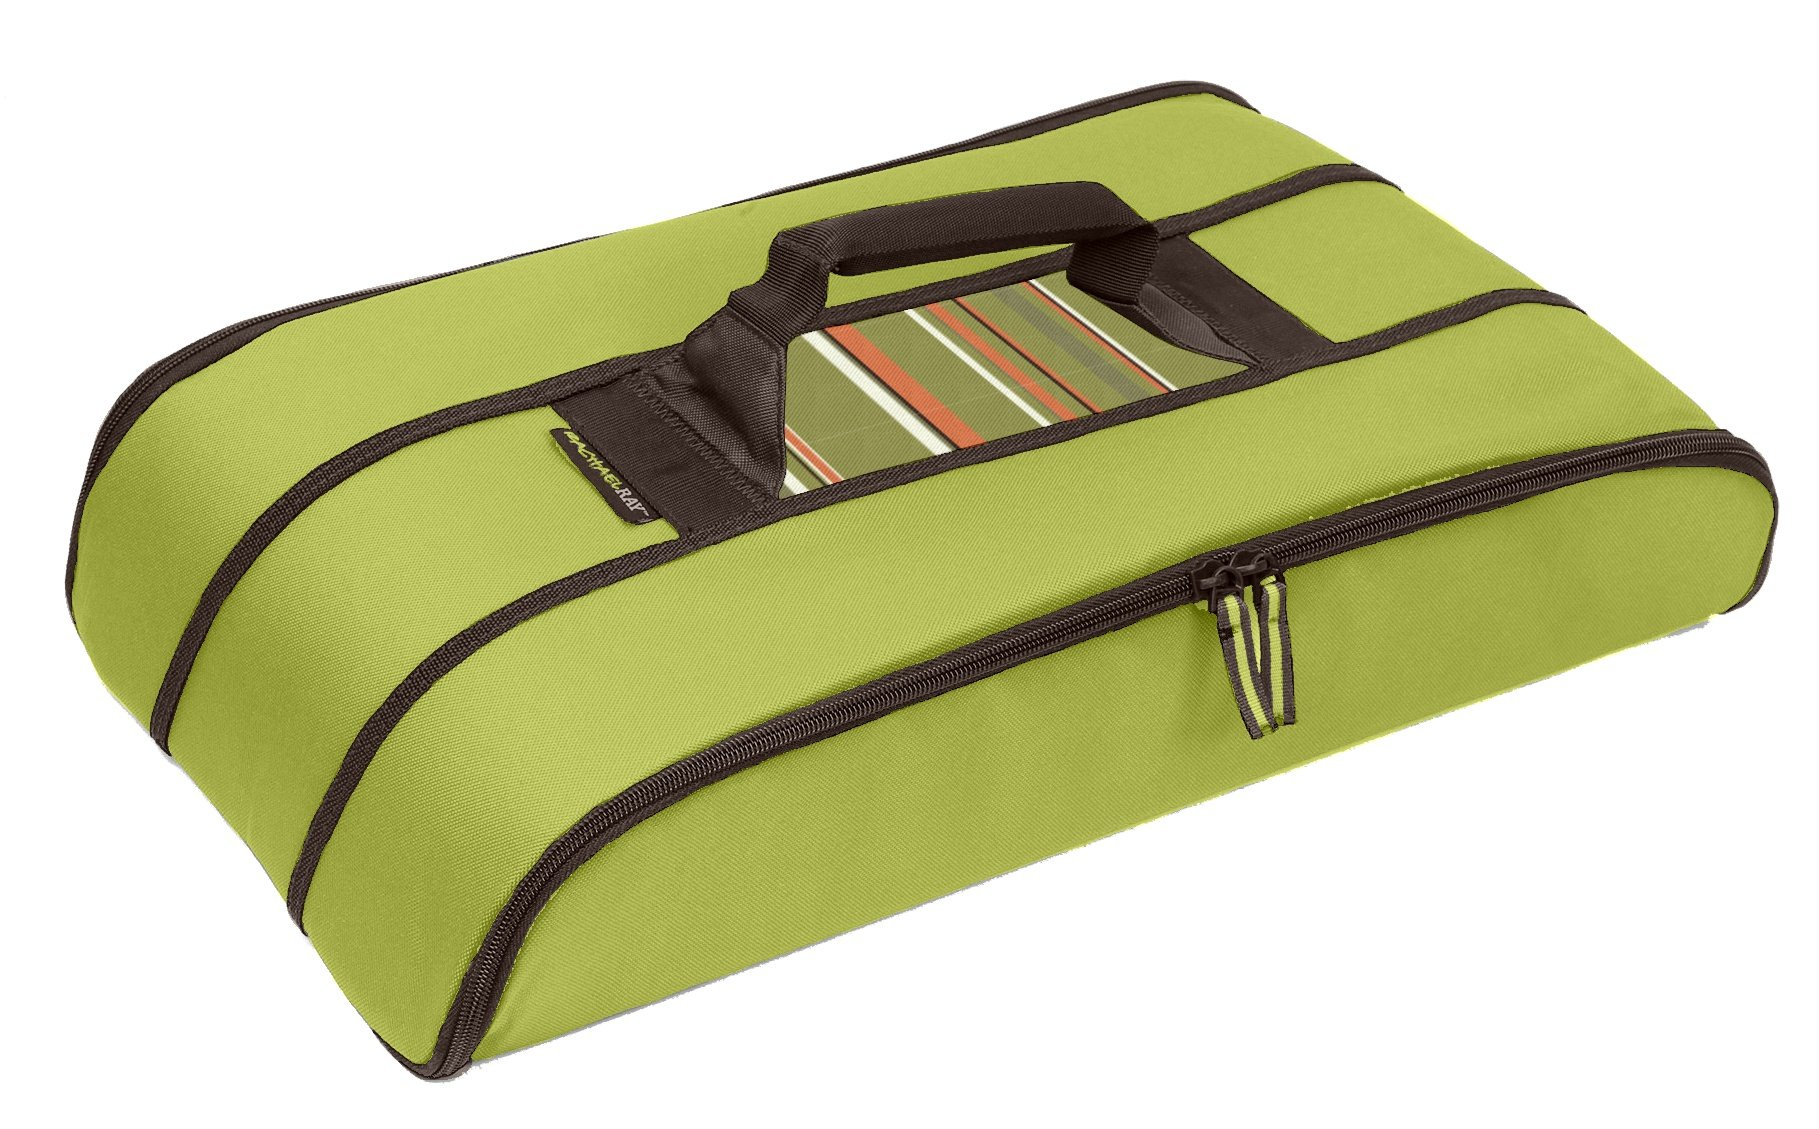 Rachael Ray Stowaway Potlucker, Holds Larger Casseroles / Baking Dishes Up To 10 X 15 Inches, Green